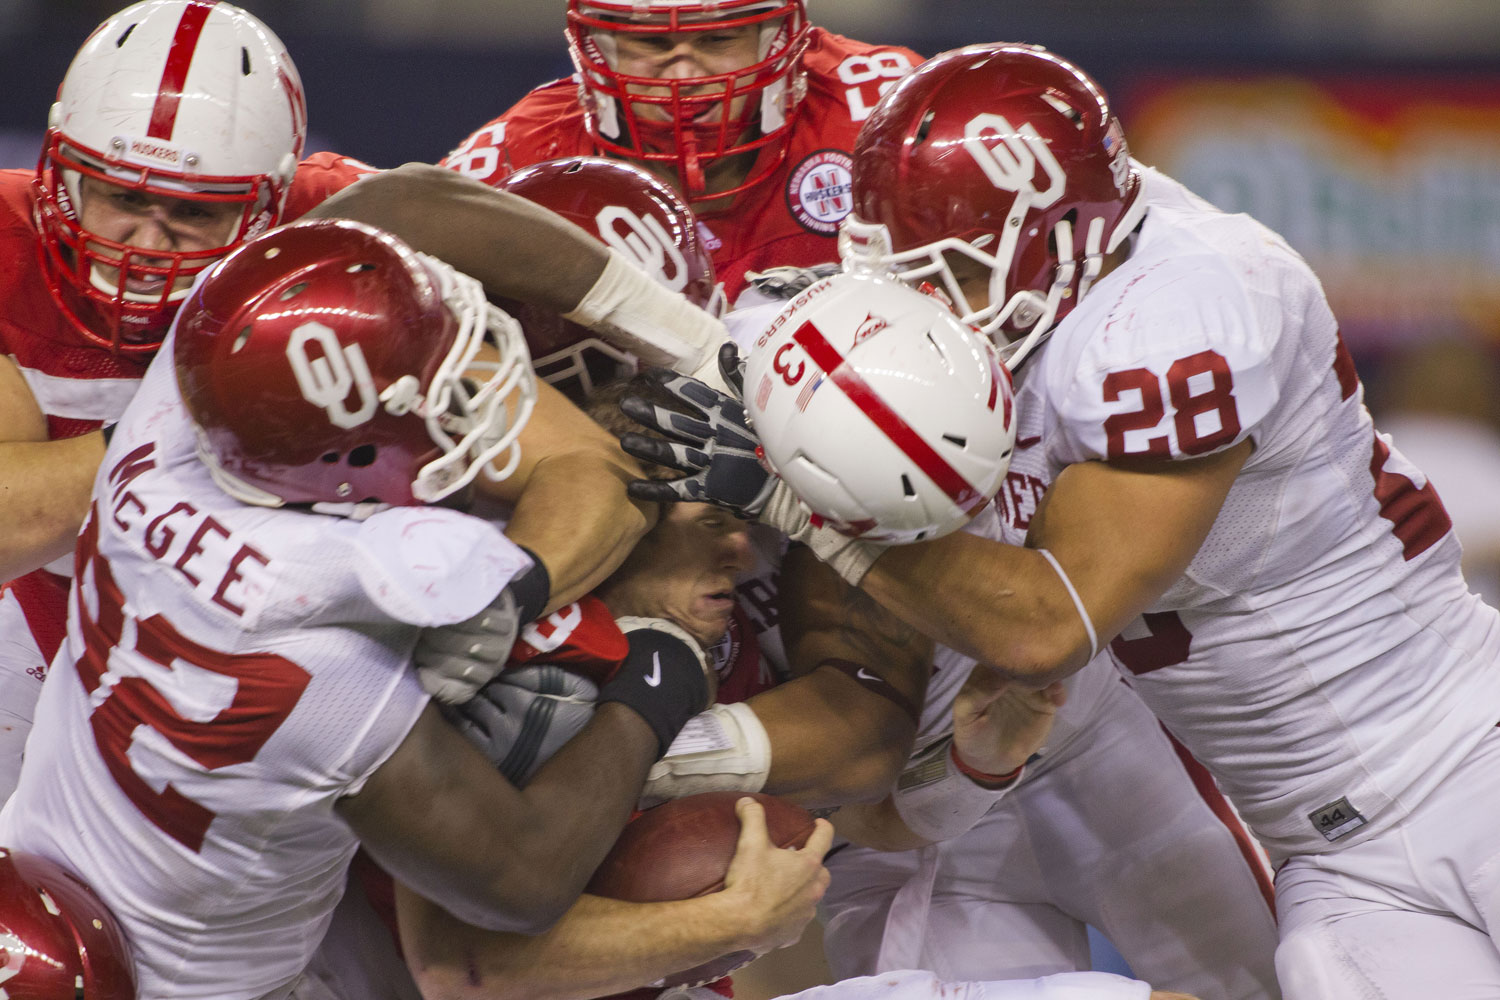 Husker quarterback Taylor Martinez nearly loses his eye, along with his helmet, during last year's Big 12 championship game against Oklahoma in December.